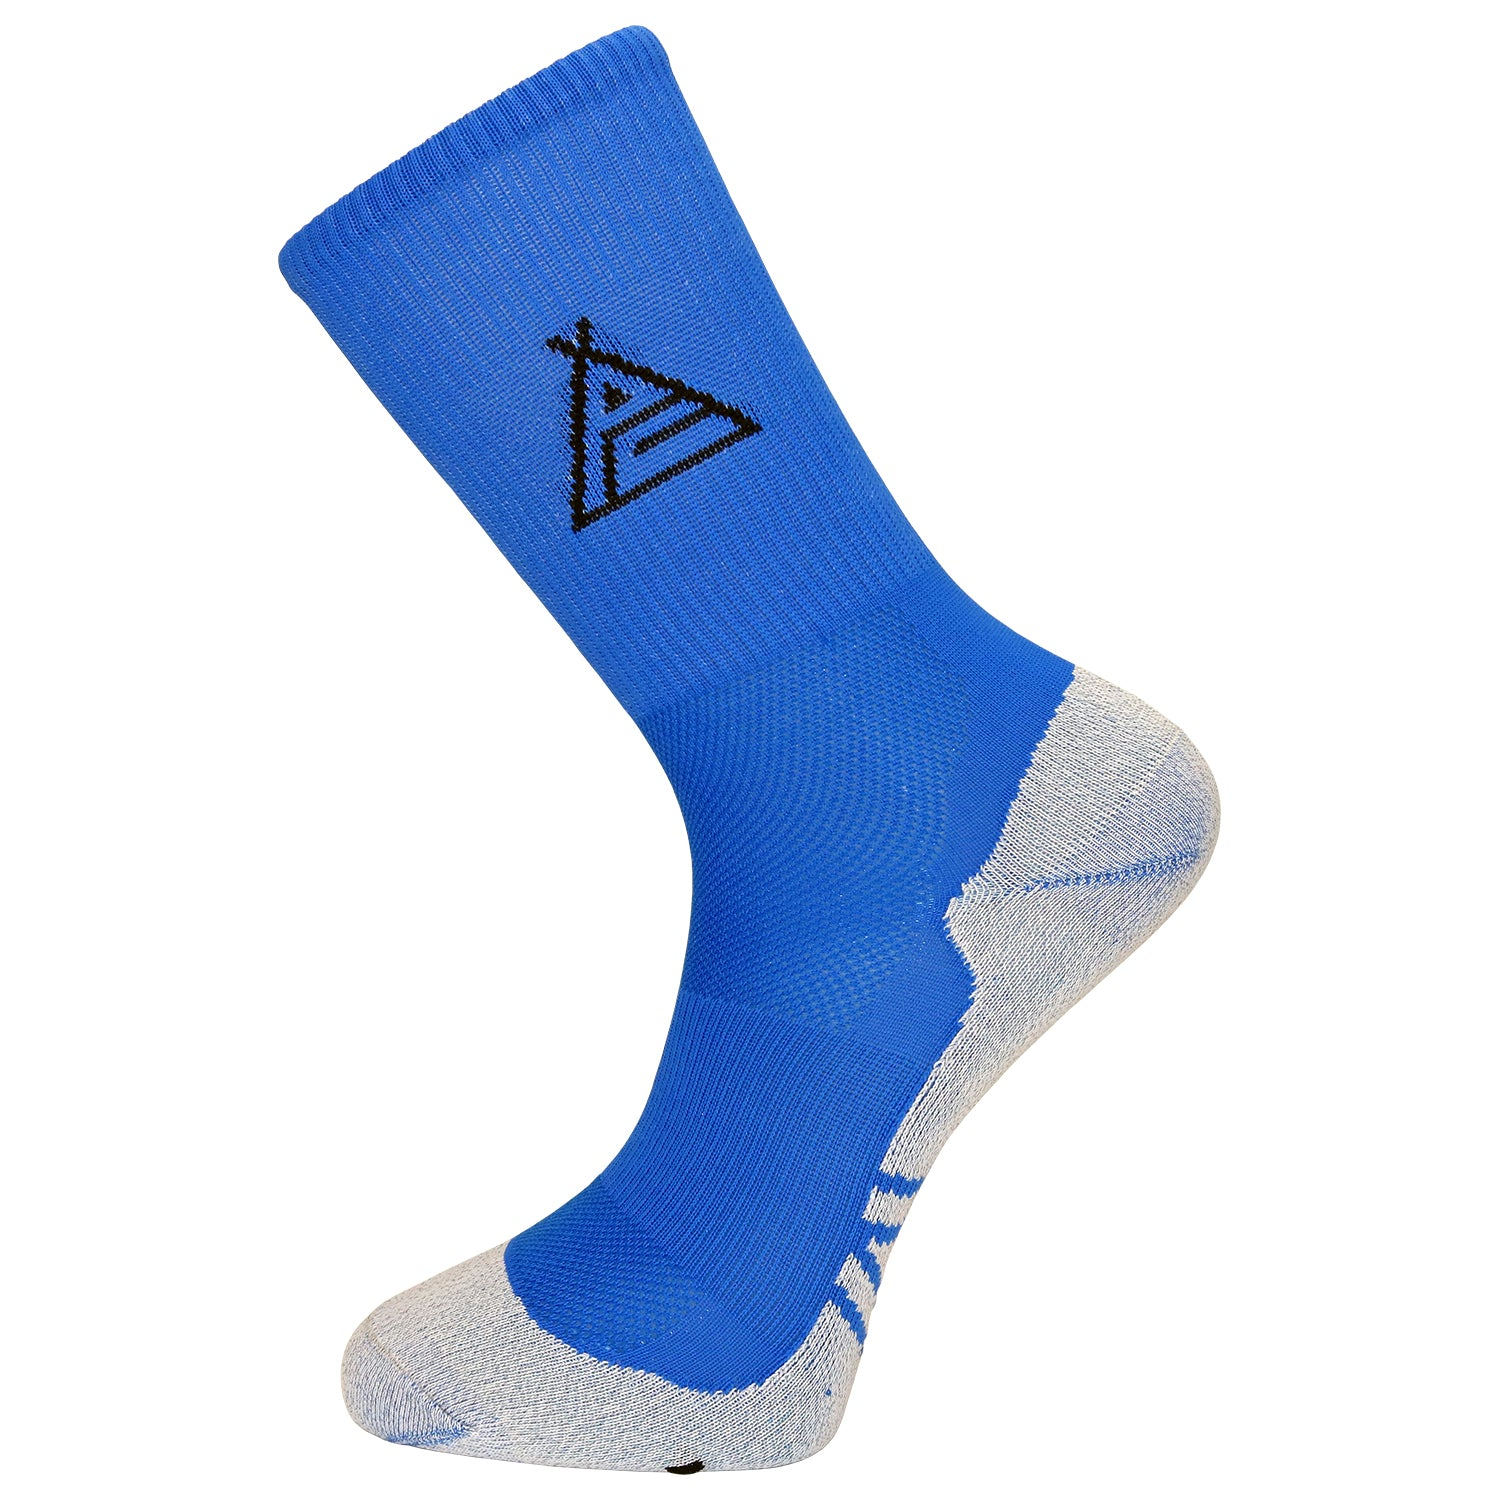 royal - Prendas Spring Summer Dryarn-Carbon Socks